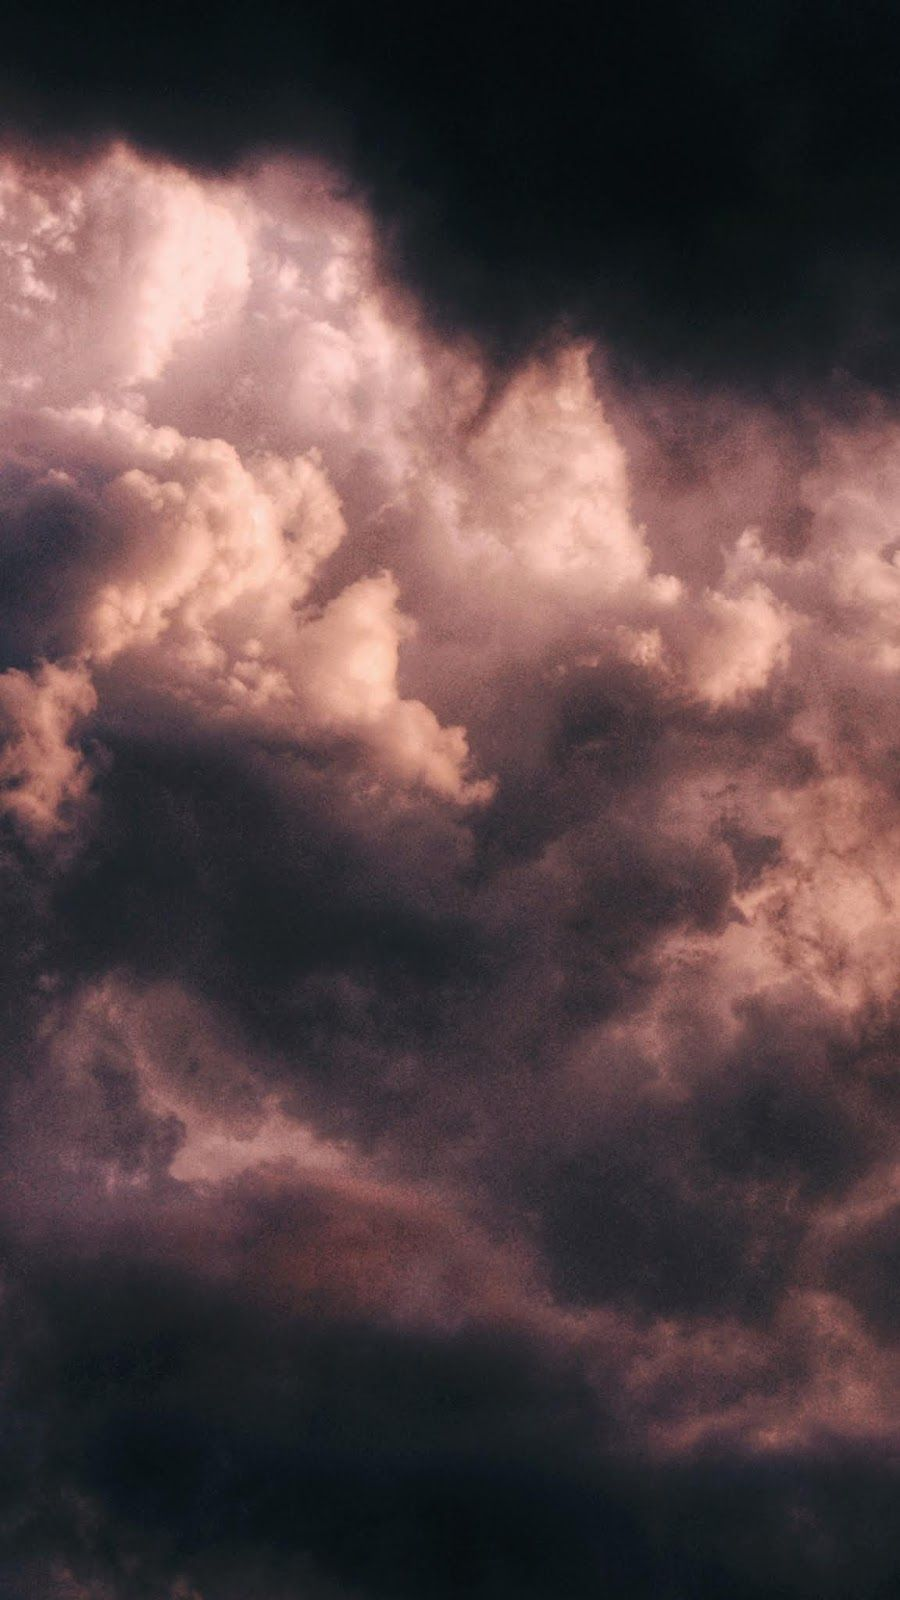 Clouds Wallpaper Iphone Android Background Followme Clouds Wallpaper Iphone Clouds Pretty Wallpaper Iphone